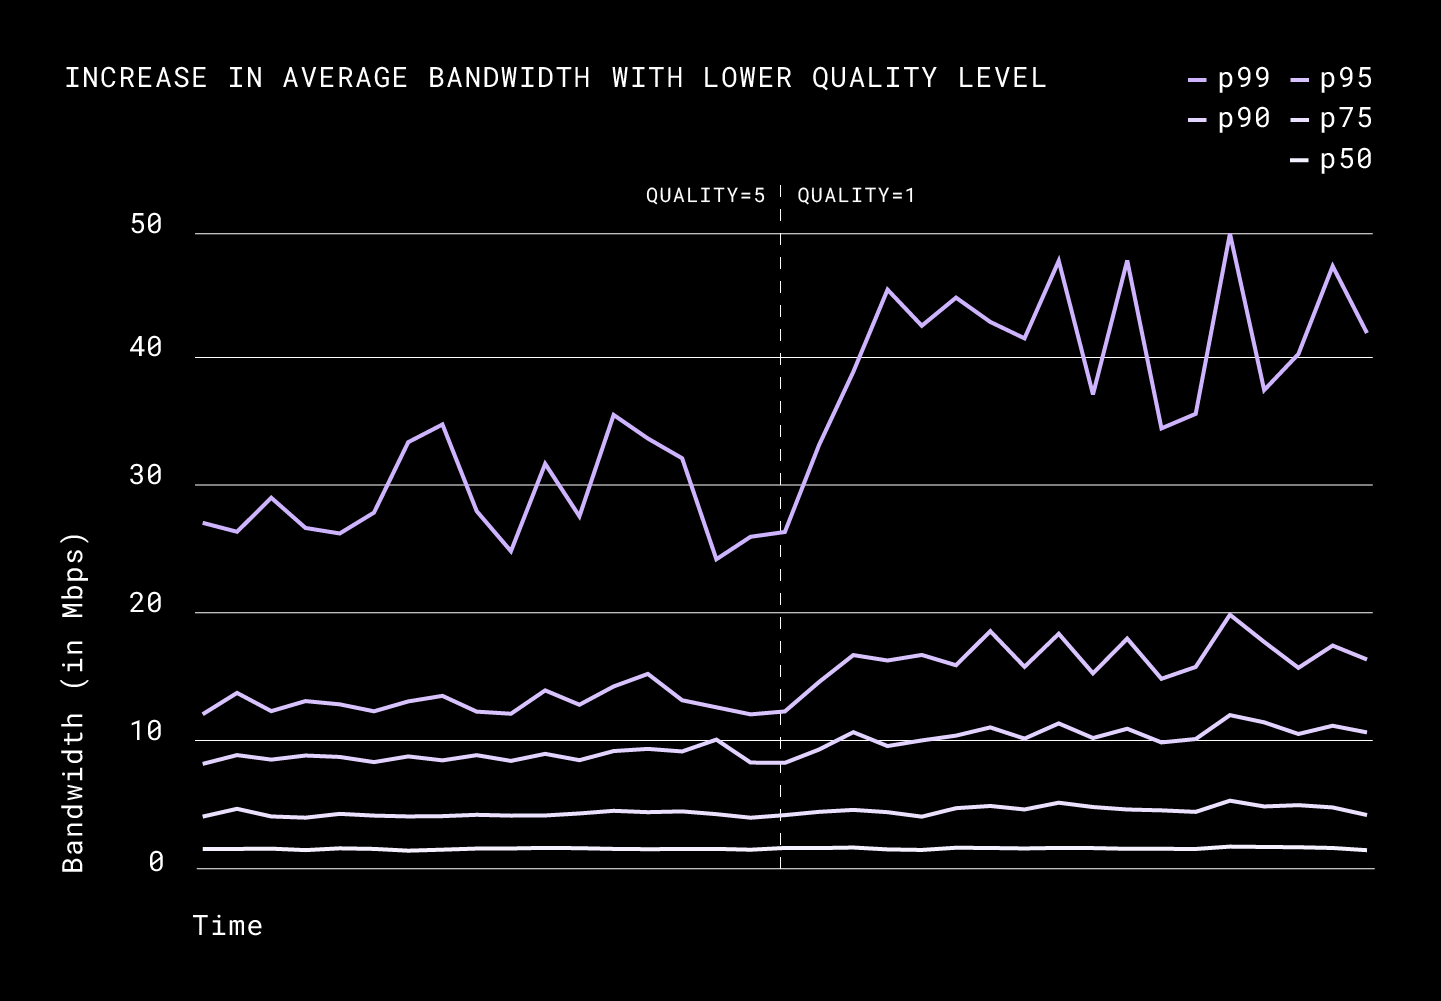 Increase in average bandwidth with lower quality level